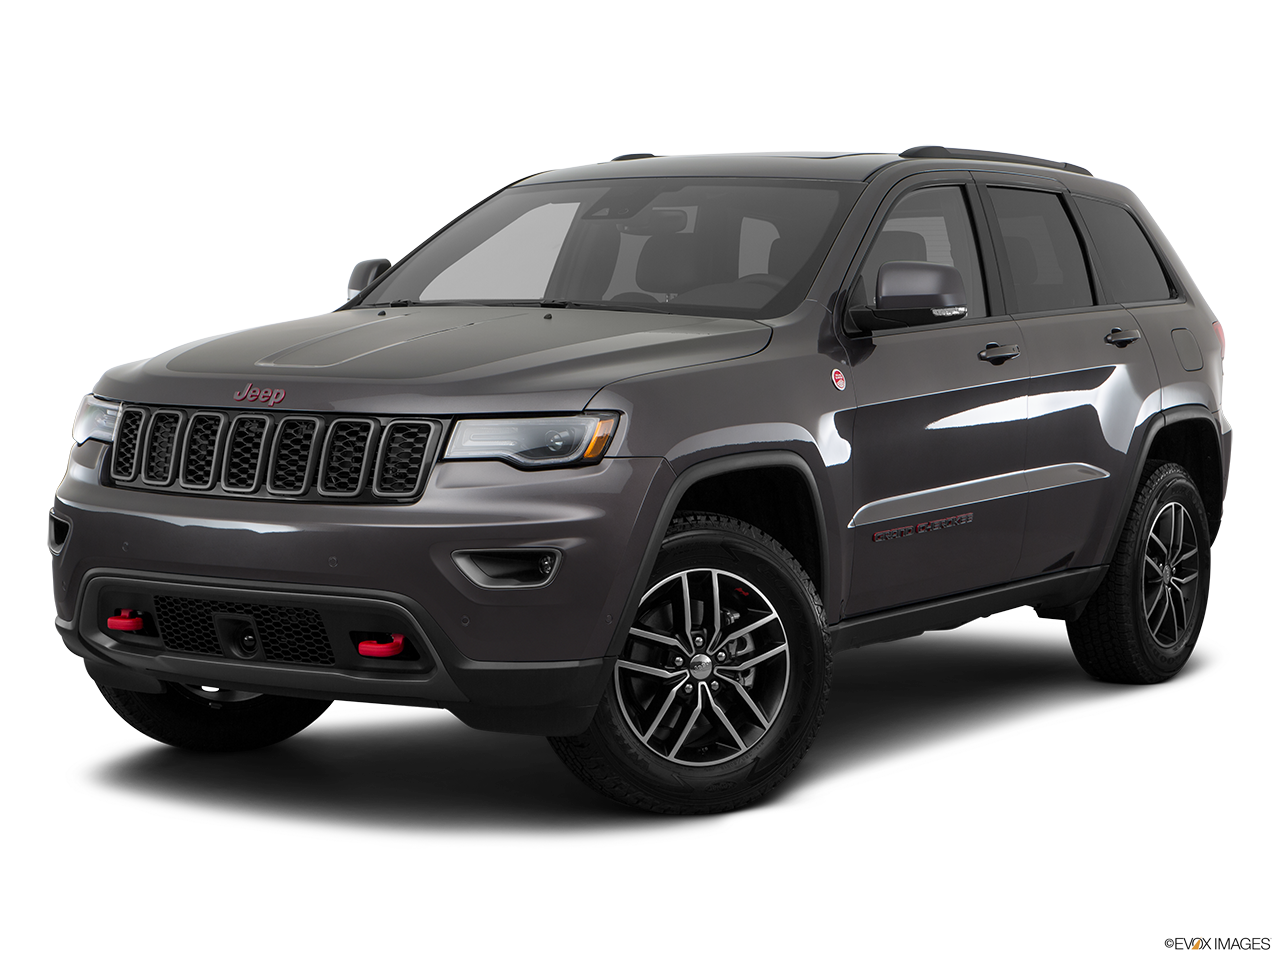 Test Drive A 2017 Jeep Grand Cherokee at Premier Jeep in Tracy